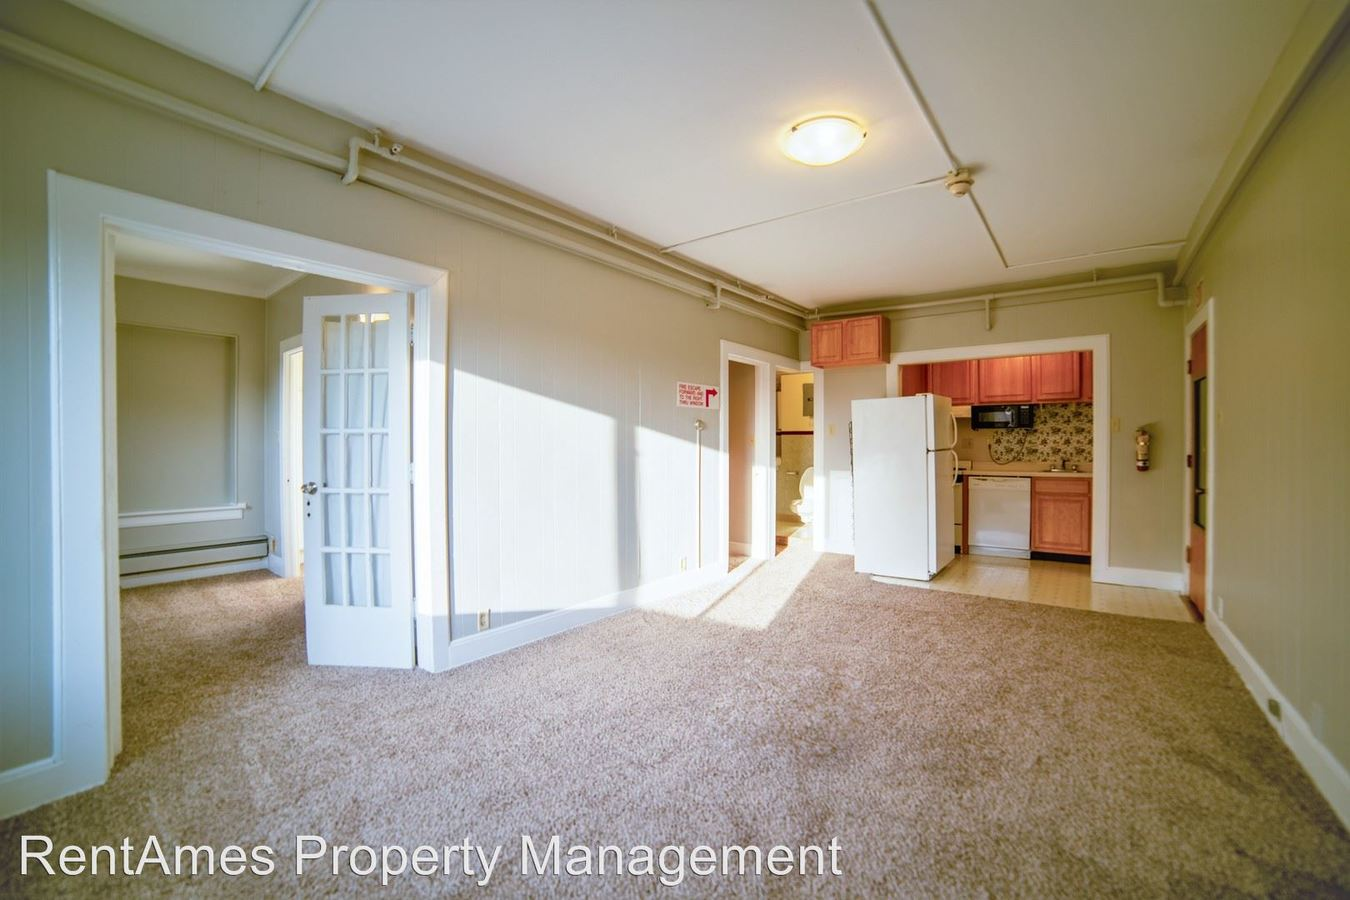 2 Bedrooms 1 Bathroom Apartment for rent at 103 Stanton Ave in Ames, IA